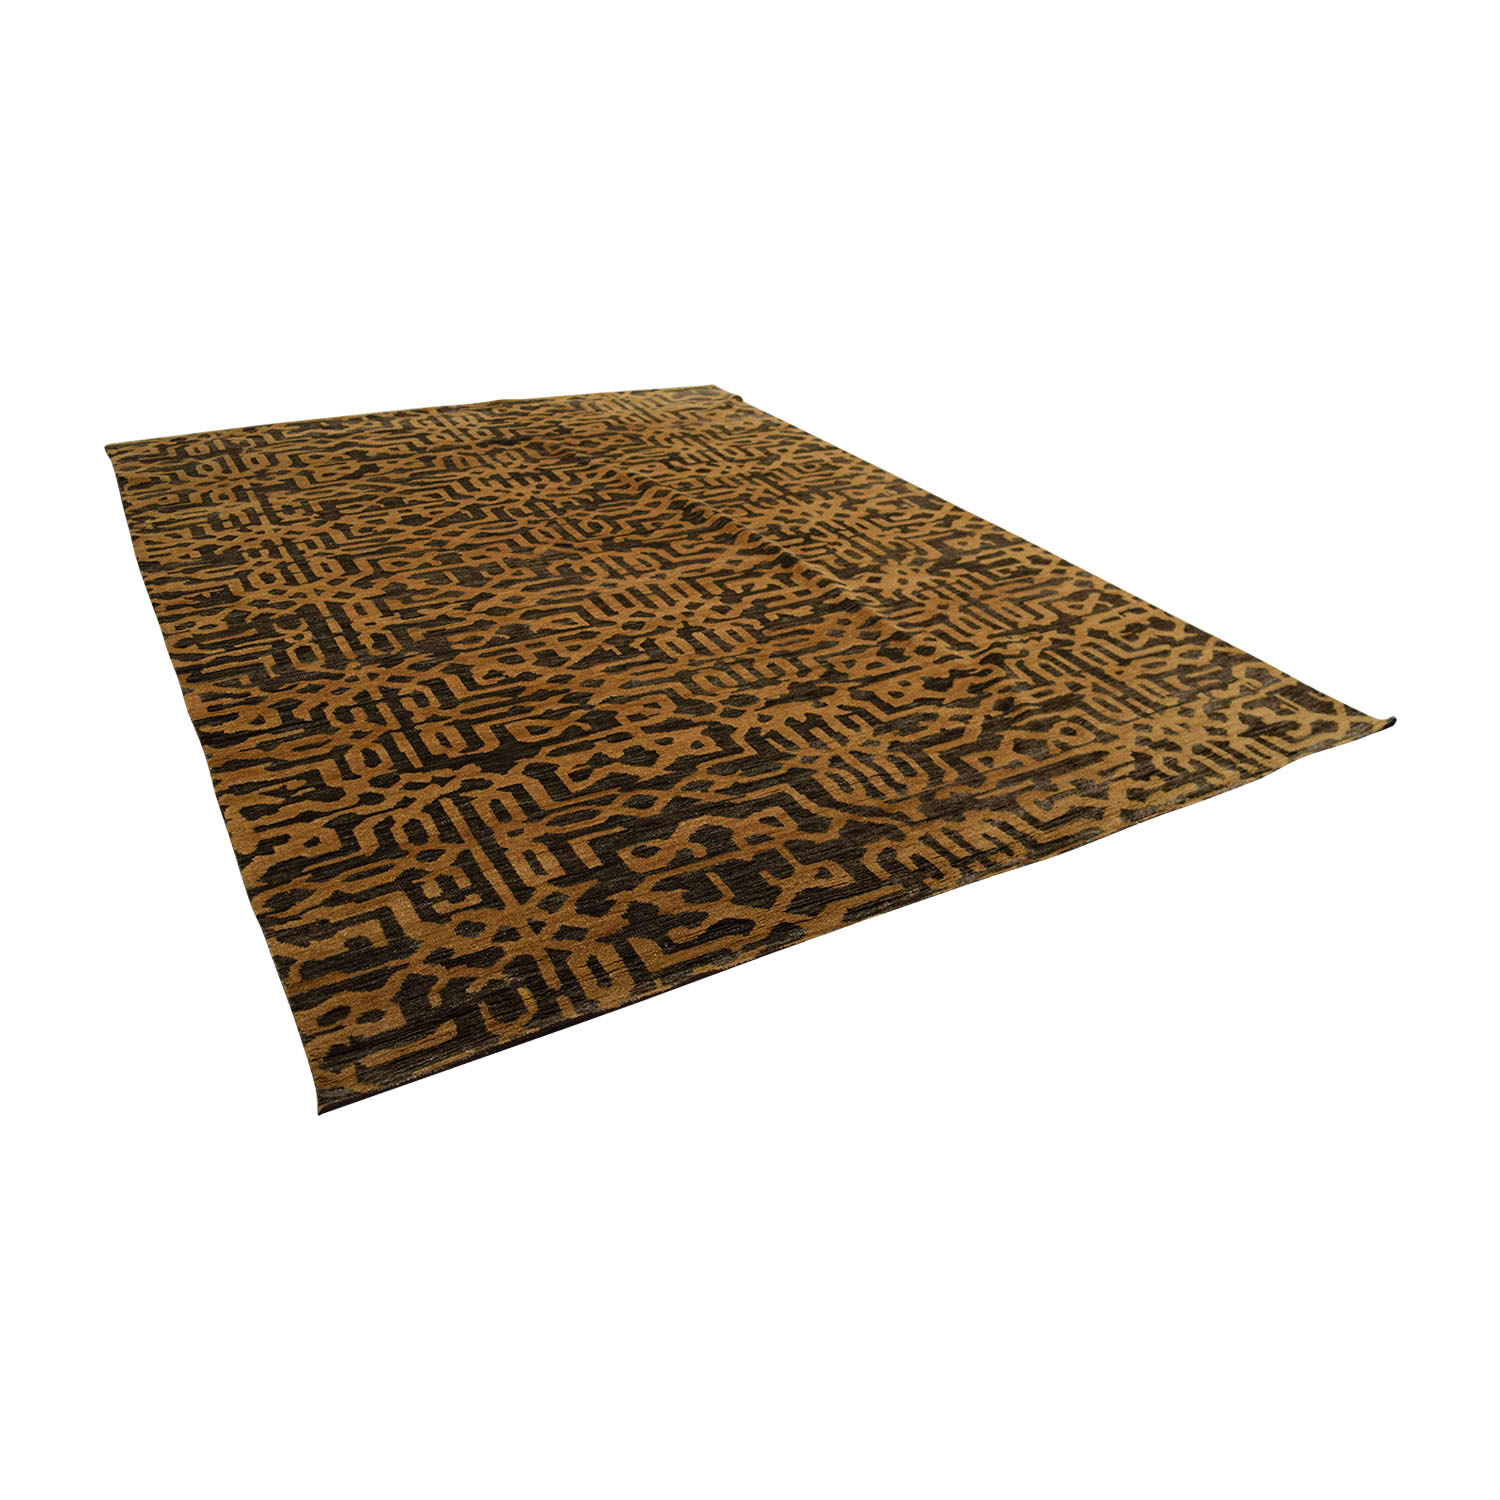 buy Obeetee Hand Knotted Brown and Tan Wool Rug Obeetee